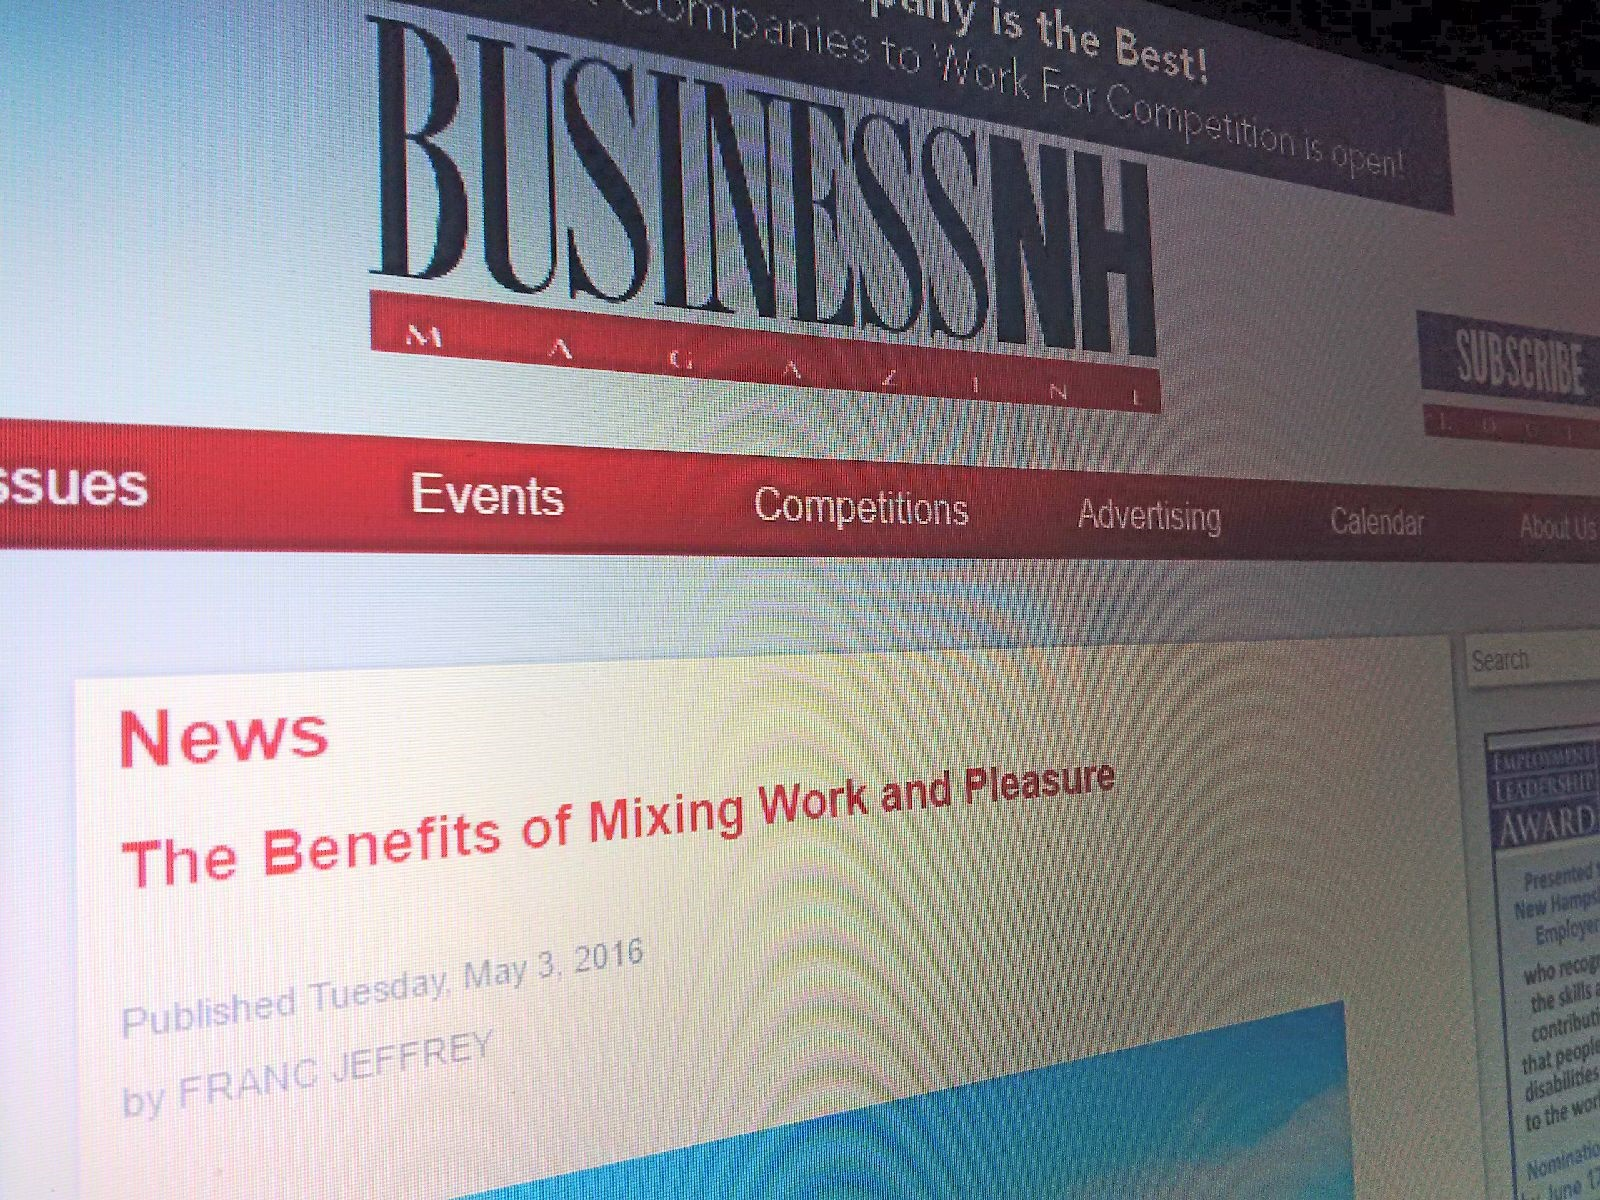 BNH - The Benefits of Mixing Work and Pleasure